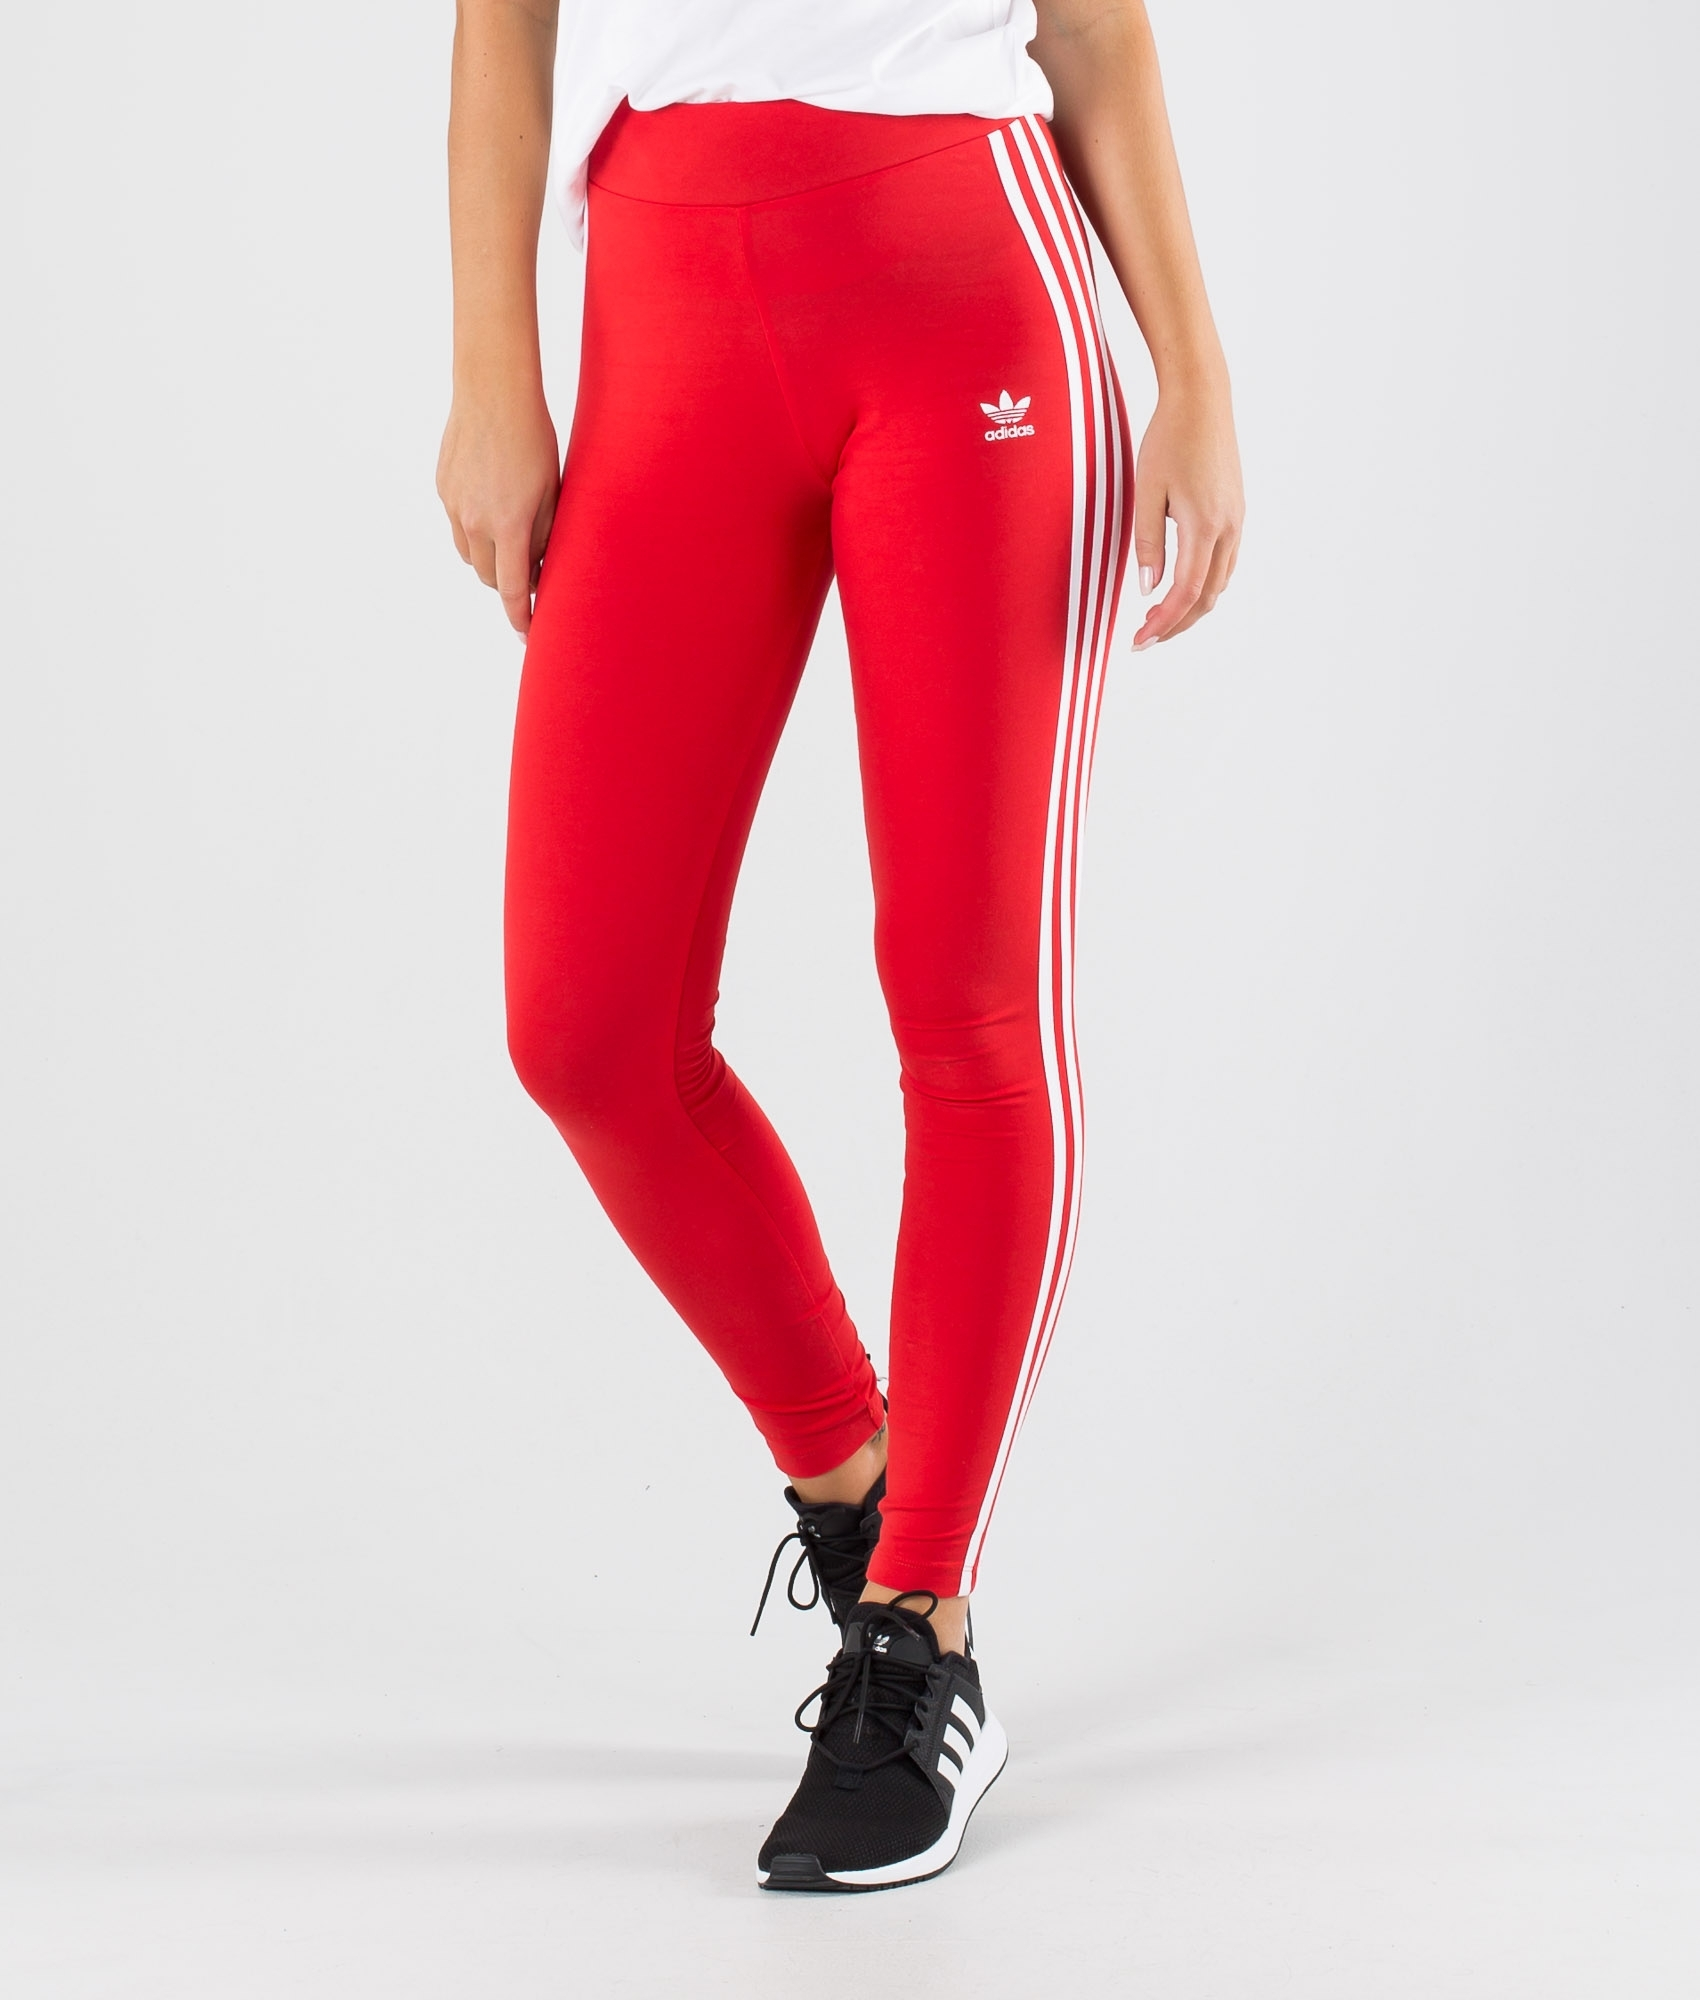 Mamá En el piso Dental  Adidas Originals 3 Stripe Tight Leggings Lush Red/White - Ridestore.com